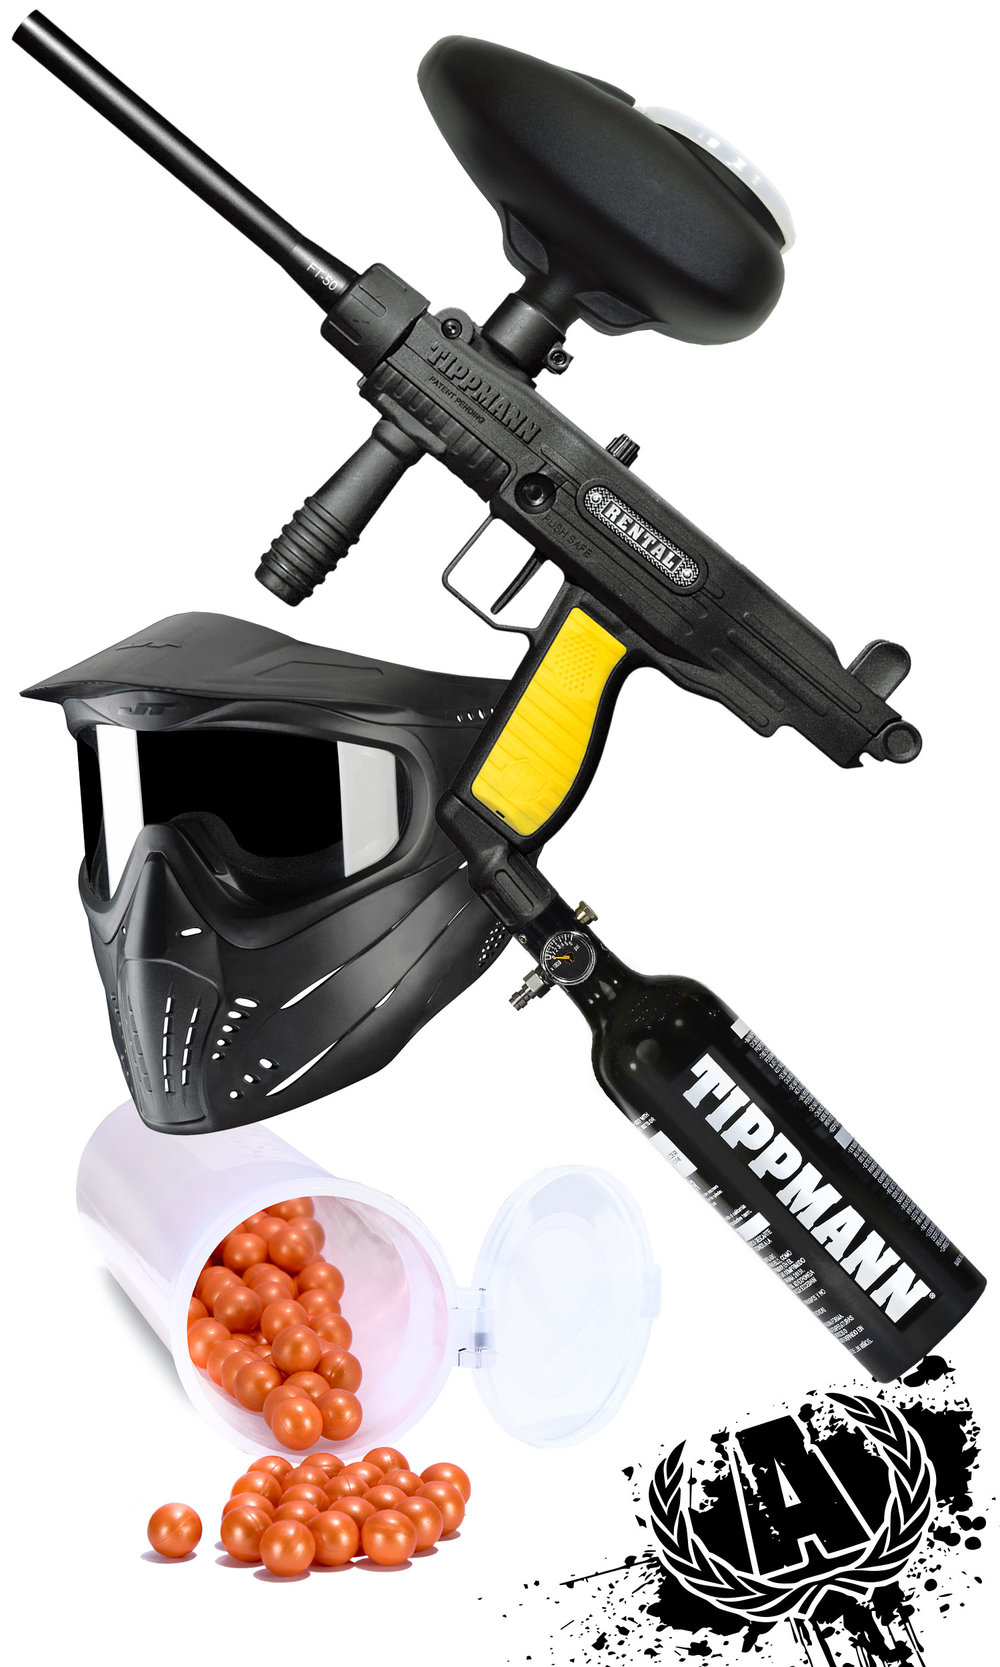 Includes, all day entry, all day air, paintball marker, hopper, air tank, mask, and 140 rounds of paintballs - StandardPackage$24.99